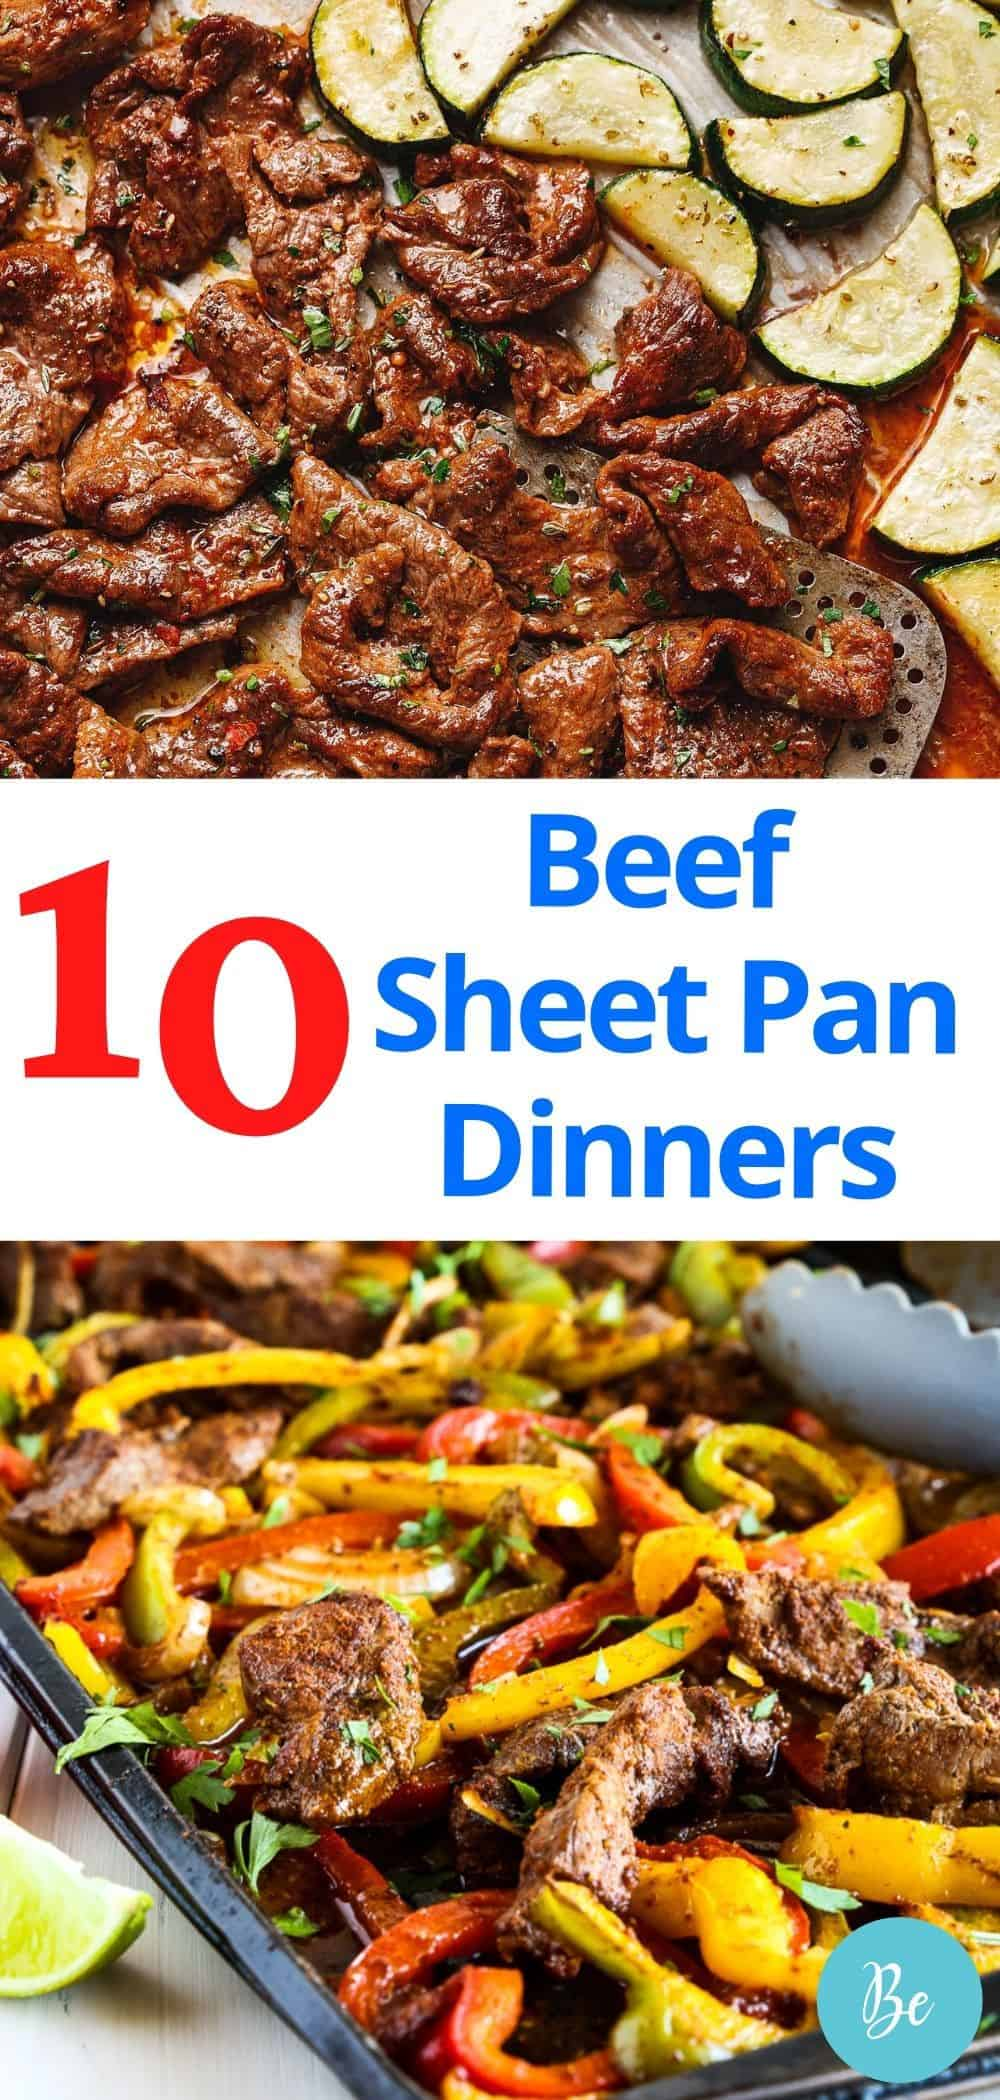 Pin with beef sheet pan meals